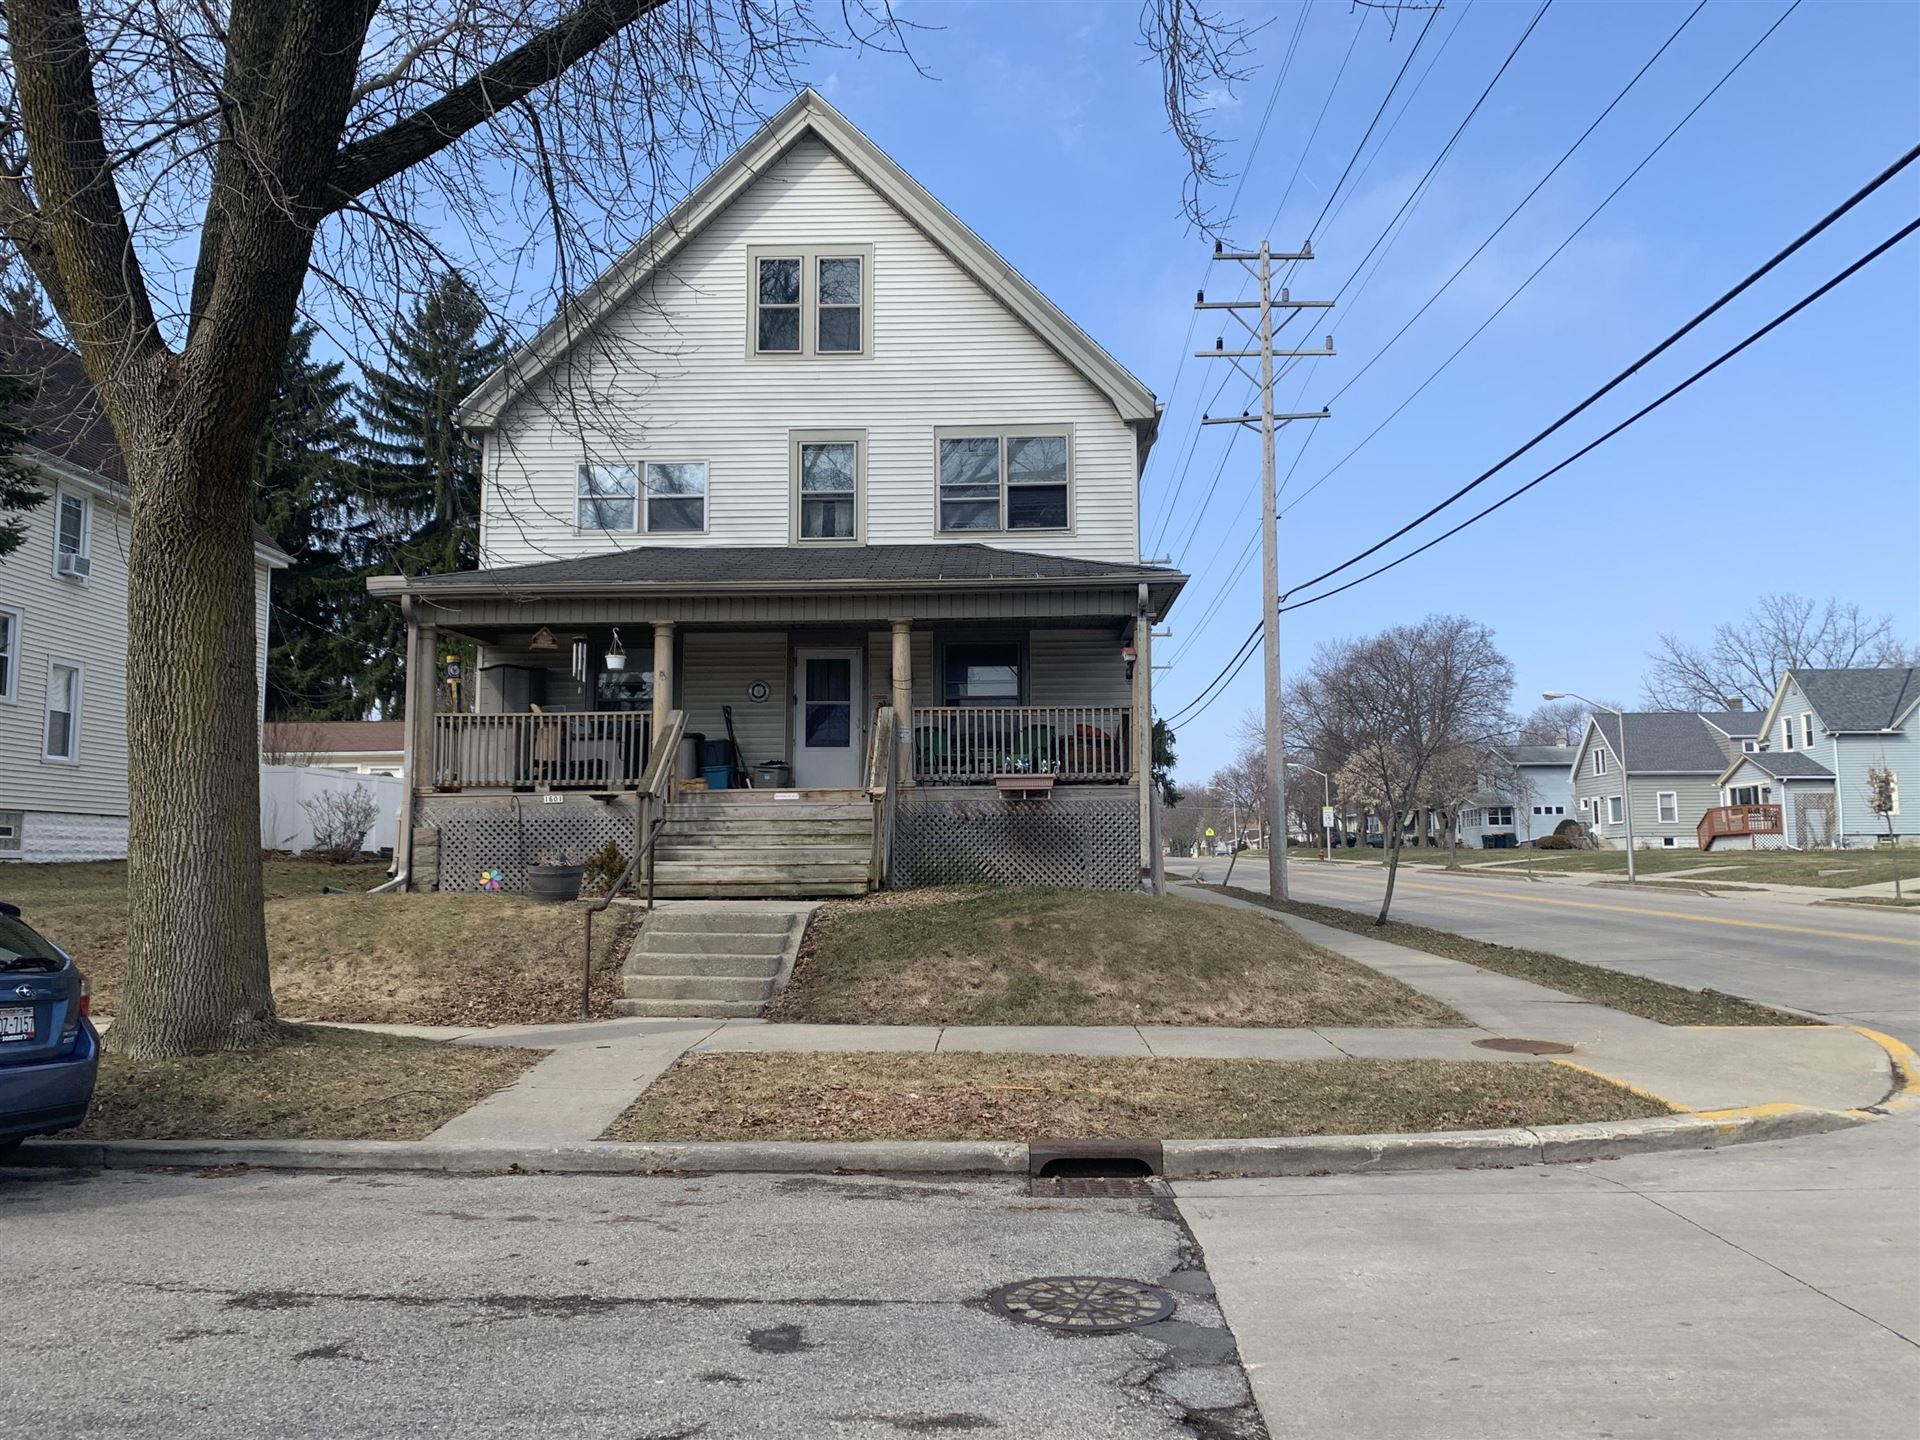 1601 S 85th St, West Milwaukee, WI 53214 - #: 1682675